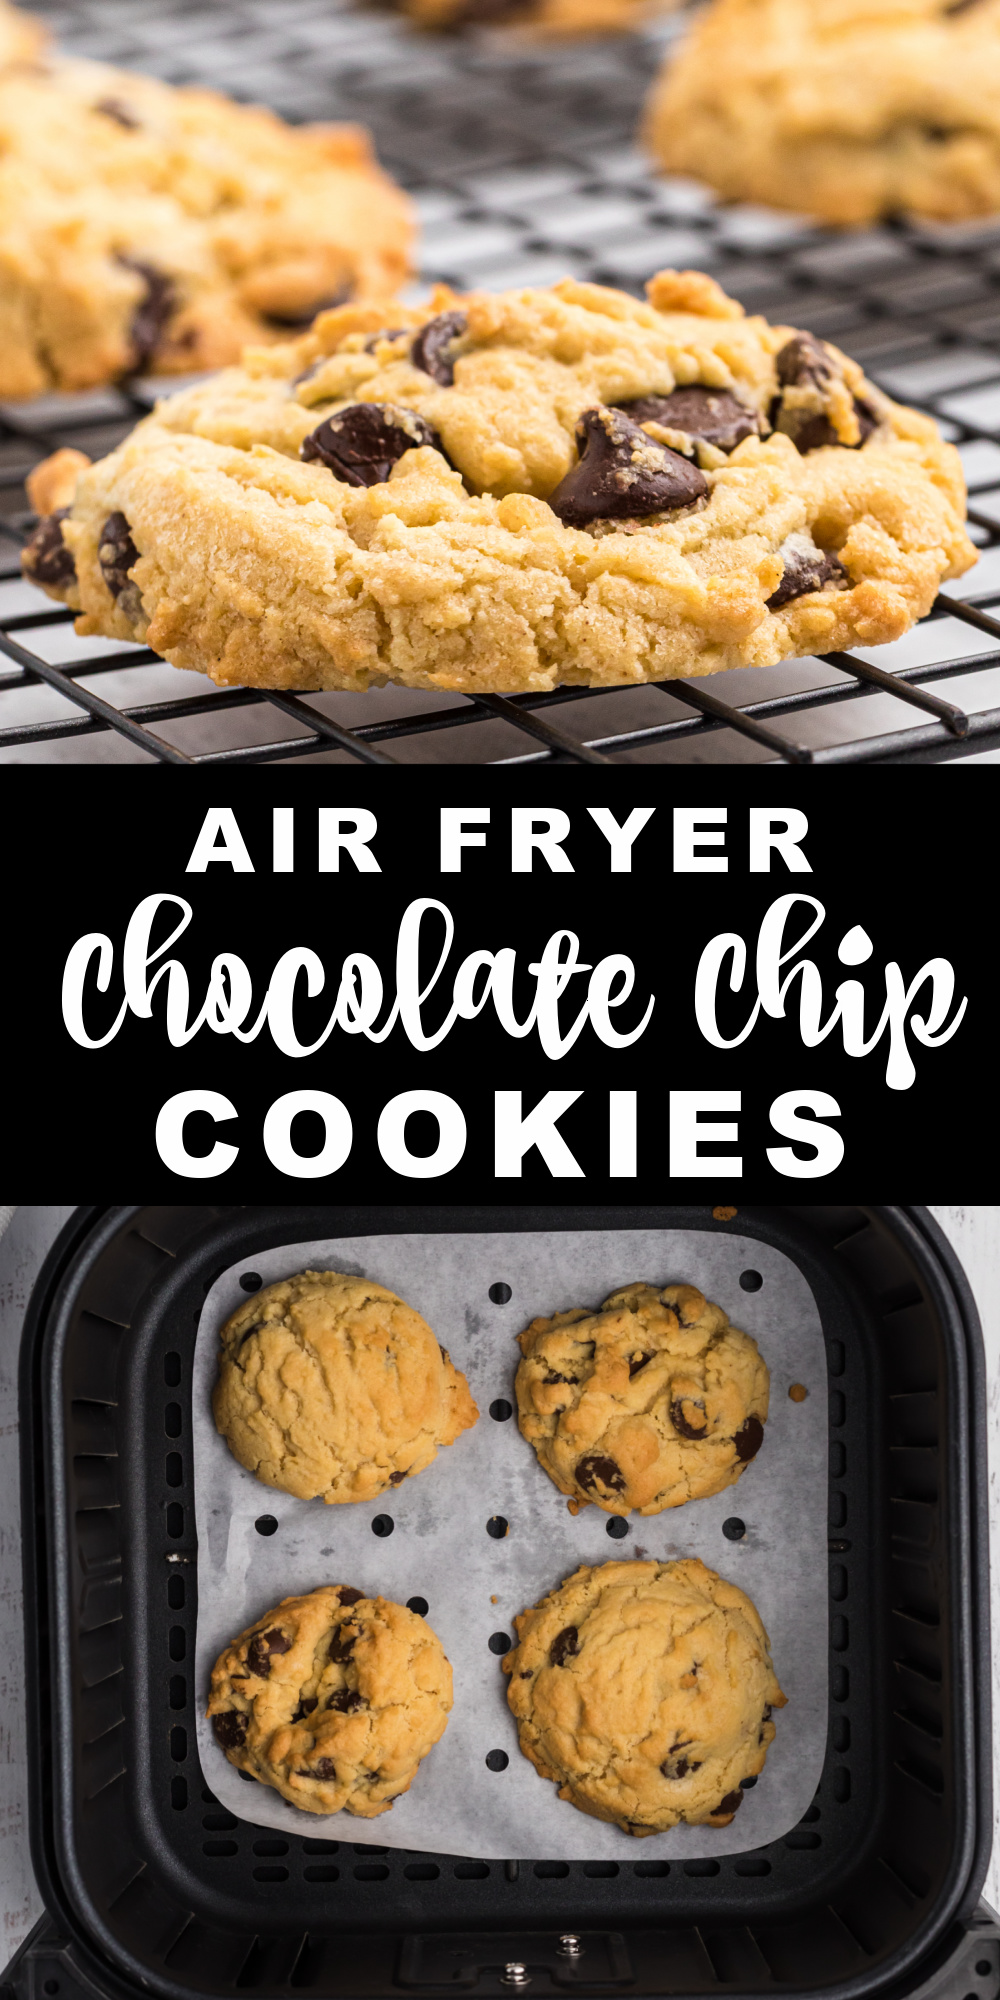 Air Fryer Chocolate Chip Cookies are some of my favorite cookies to make when I'm craving soft, doughy, cookies but don't want to make an entire batch. Made with brown sugar, vanilla, chocolate chips, and more! An easy air fryer dessert recipe.